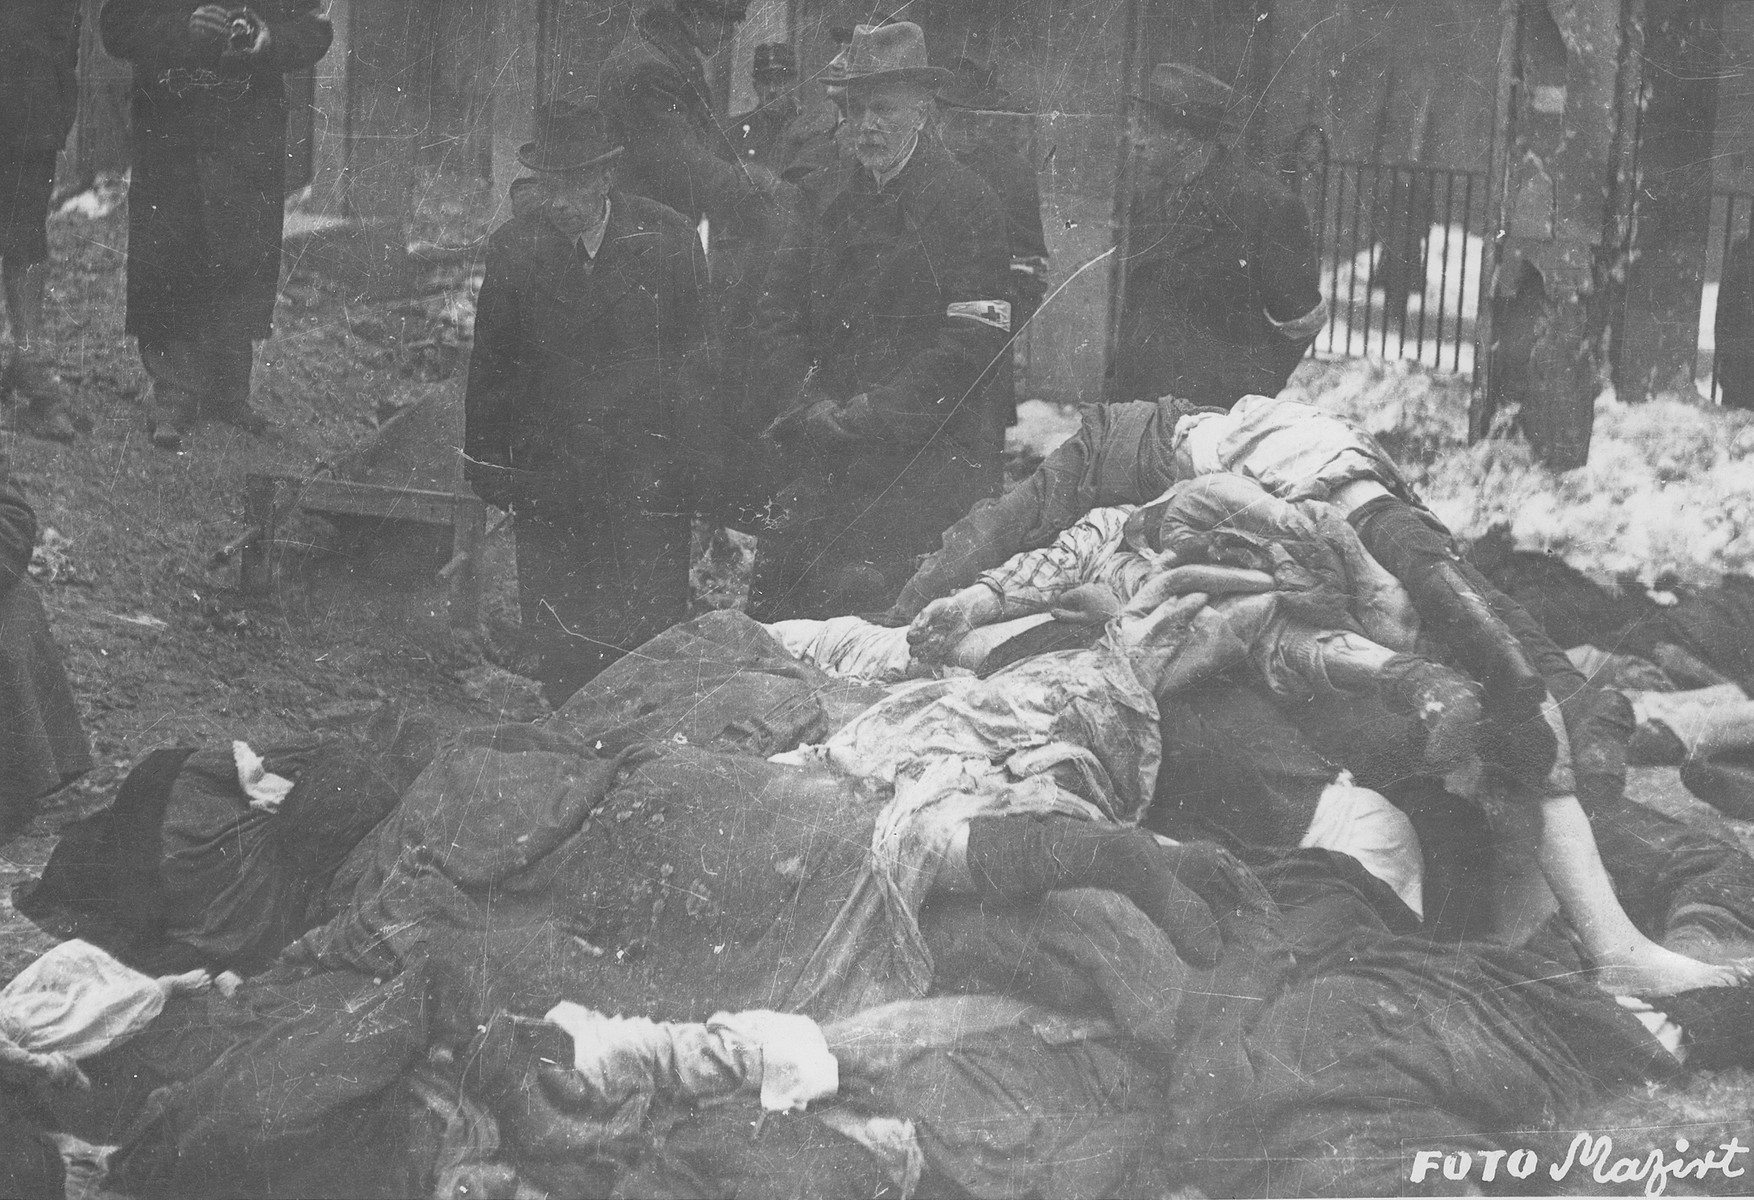 Members of the Commission for the Investigation of Nazi and Arrow Cross Atrocities examine the bodies of Jews in the courtyard of the Dohany Street Synagogue.  During the last few months of the war in Hungary, the Nyilas (Arrow Cross) exploited the anarchic conditions in the areas still under their control to continue their excesses against the Jews.  This was particularly true in Budapest, despite the fact that the Soviet army had completely encircled the city by December 27, 1944.  The reign of terror that had begun with Szalaszi's assumption of power on October 15, 1944, went almost completely unchecked after the beginning of the Soviet siege on December 9.  Gangs of armed Nyilas--mostly teenagers--roamed the city hunting for Jews in hiding.  They searched them out in hospitals, shelters, homes outside the ghetto, in the International Ghetto, and in the large ghetto.  After robbing the Jews of their remaining valuables, the Nyilas shot them on the spot or marched them to the banks of the Danube, where they shot them, and threw their bodies into the river.  A large number of Jews who were murdered in the ghetto were buried in mass graves in the courtyard of the Dohany Street Synagogue.  The most horrific of these attacks occurred on the Pest side of the capital, at the two Jewish hospitals located on Maros and Varosmajor streets.  The Maros Street hospital, which had operated under the protection of the International Red Cross during the German occupation, was attacked on January 11, 1945.  After the initial melee, during which Nyilas gang members wantonly destroyed hospital equipment, threw patients out of their beds and trampled them, and murdered staff members, survivors were ordered to dig a mass grave, remove and bury the bodies.  They were then shot and buried in the grave themselves.  Only one nurse survived of the 92 people that were in the hospital at the time.  Three days later, on January 14, the hospital on Varosmajor Street was attacked, resulting in 